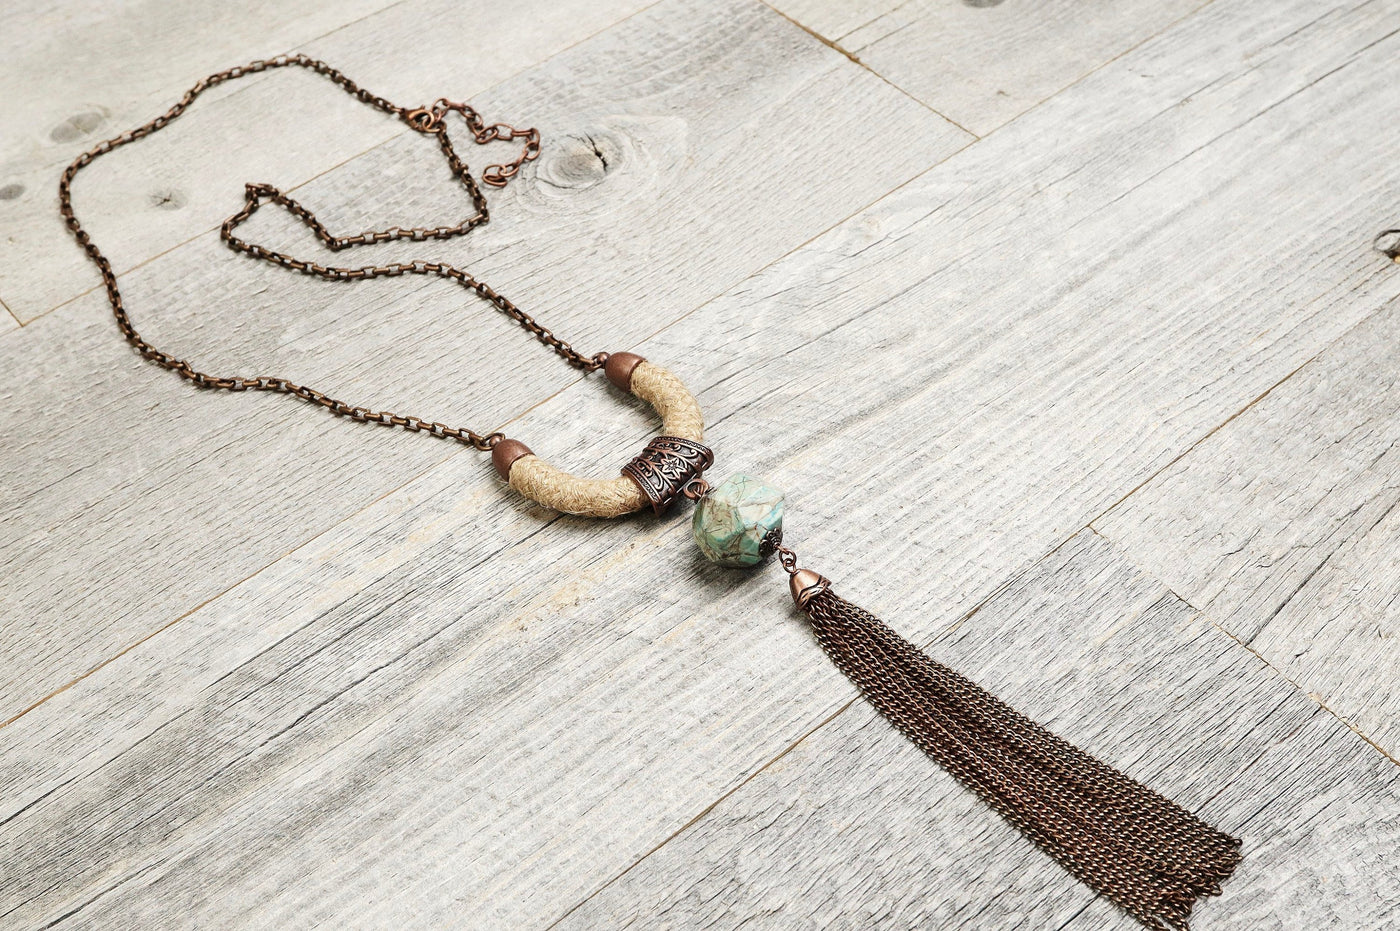 Jasper Rope Chain Tassel Boho Necklace - Long Gypsy Hippie Unique Ethnic Blue Geometric Gemstone Statement Tribal Bohemian Rustic Jewelry